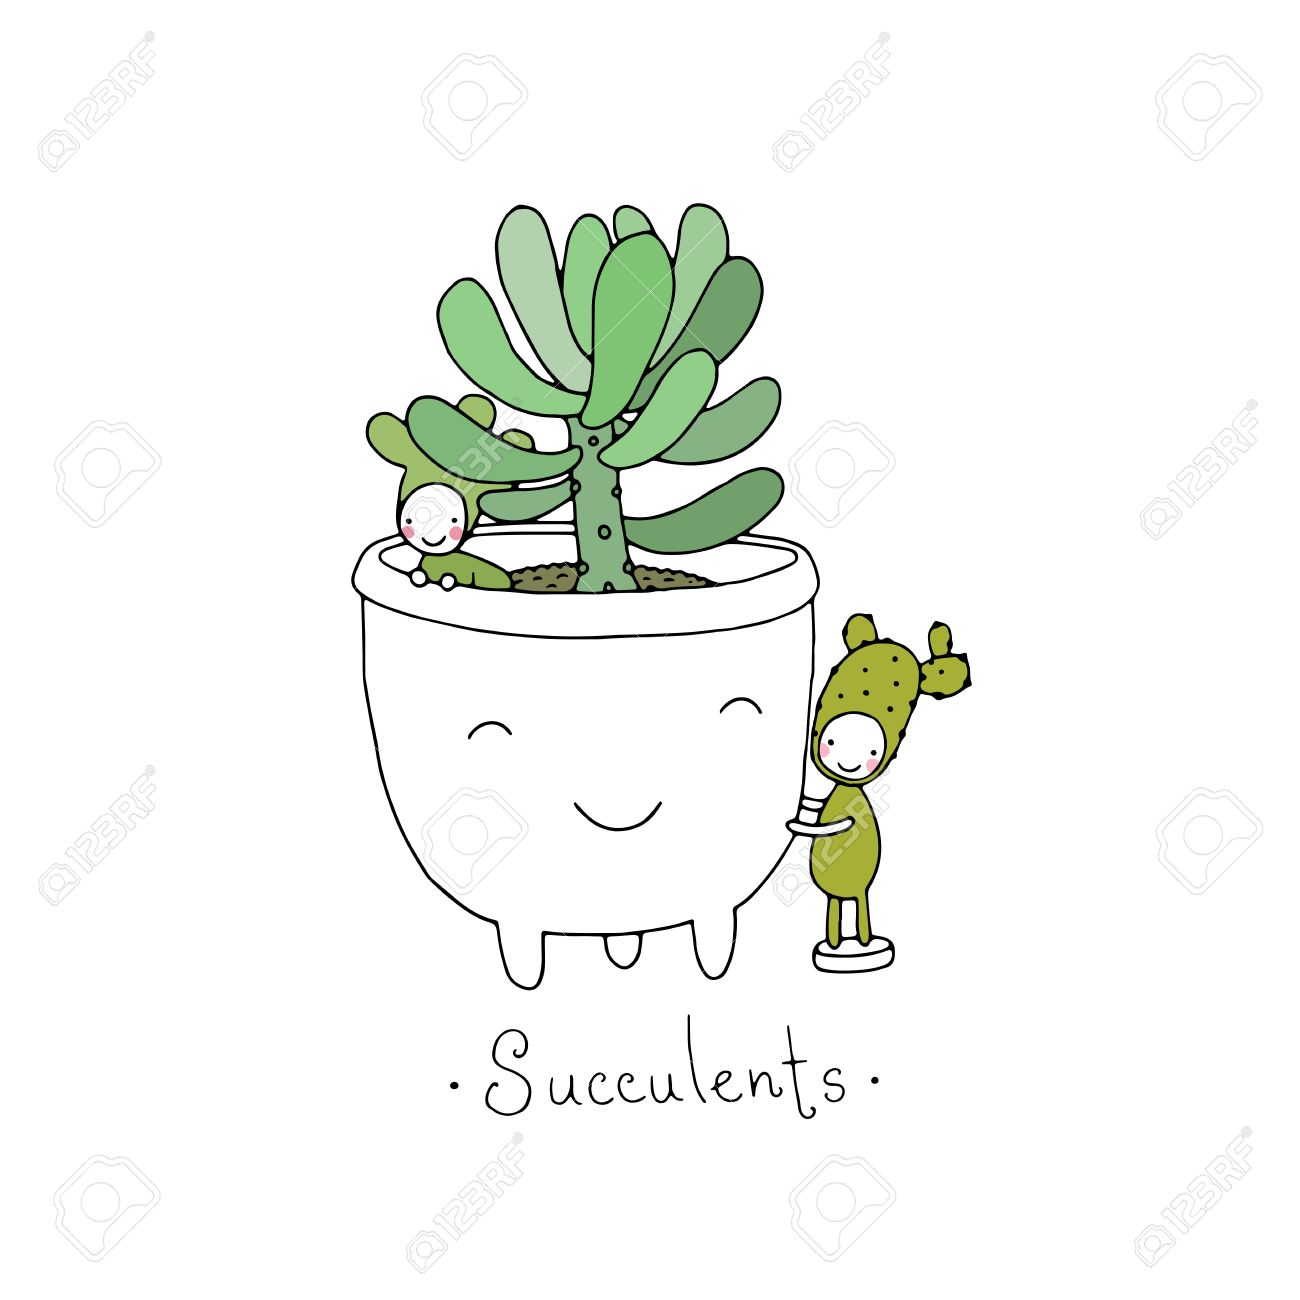 cartoon cute succulents in pot little fairyhand drawing isolated objects on white background